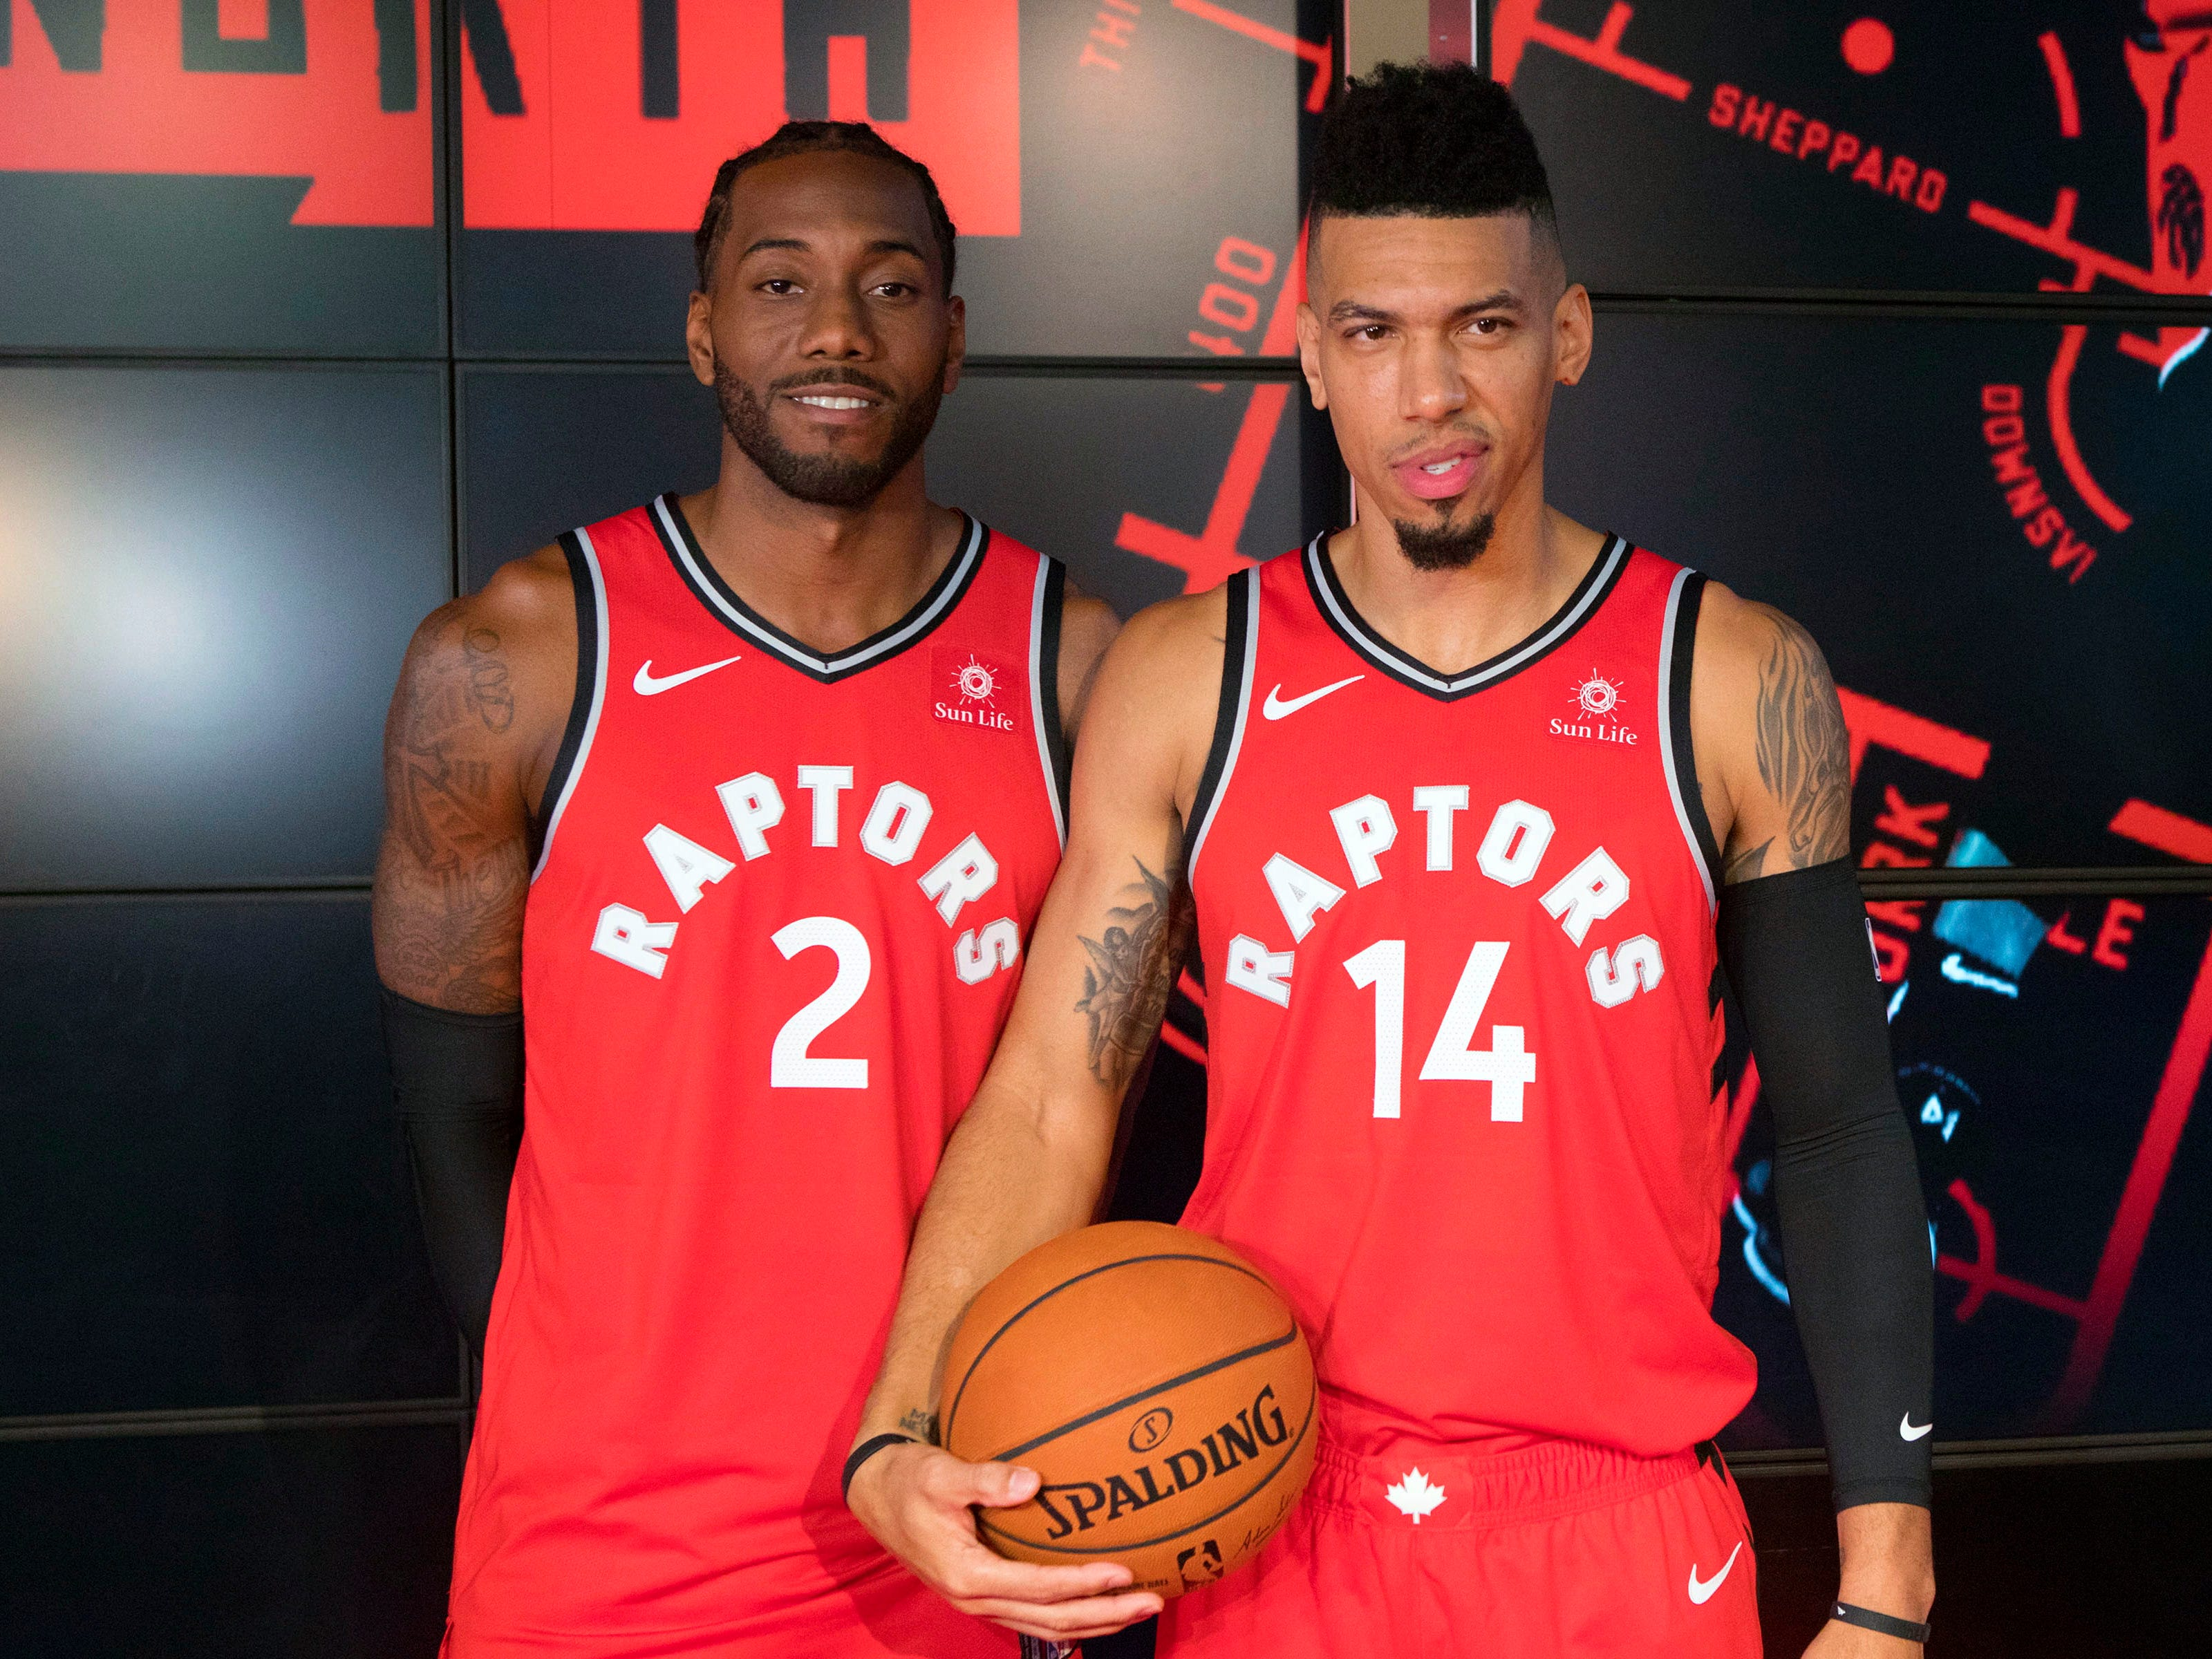 Toronto Raptors players Kawhi Leonard, left, and Danny Green pose for a photo during media day in Toronto.